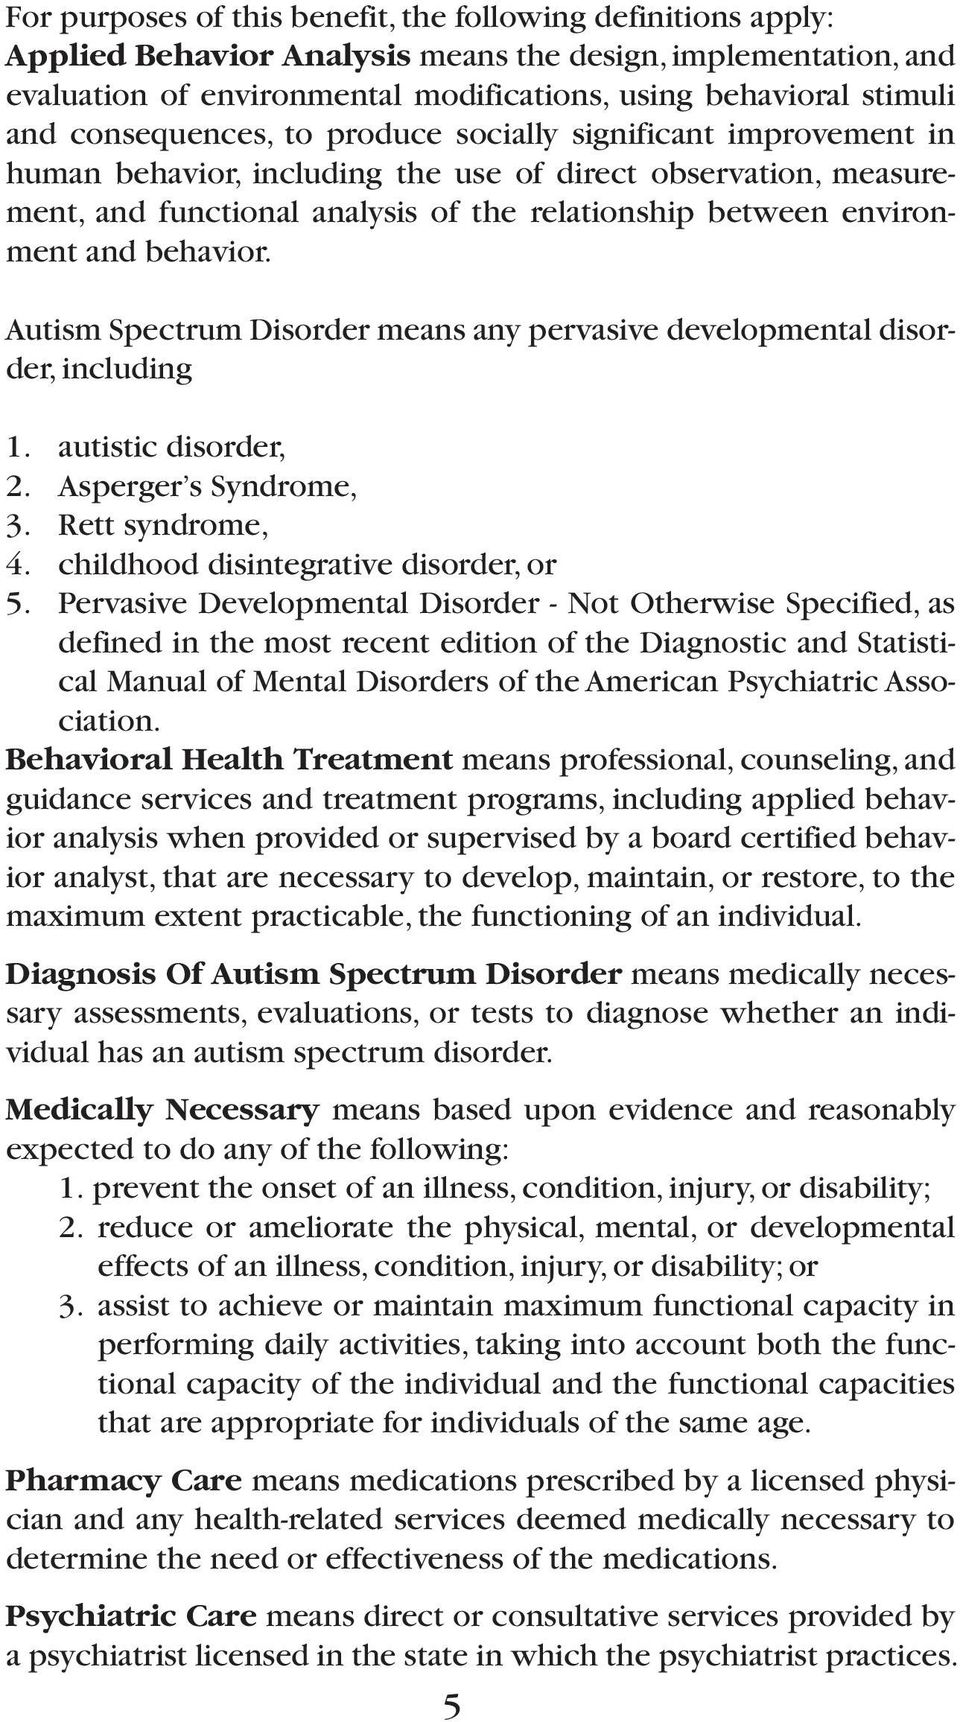 behavior. Autism Spectrum Disorder means any pervasive developmental disorder, including 1. autistic disorder, 2. Asperger s Syndrome, 3. Rett syndrome, 4. childhood disintegrative disorder, or 5.